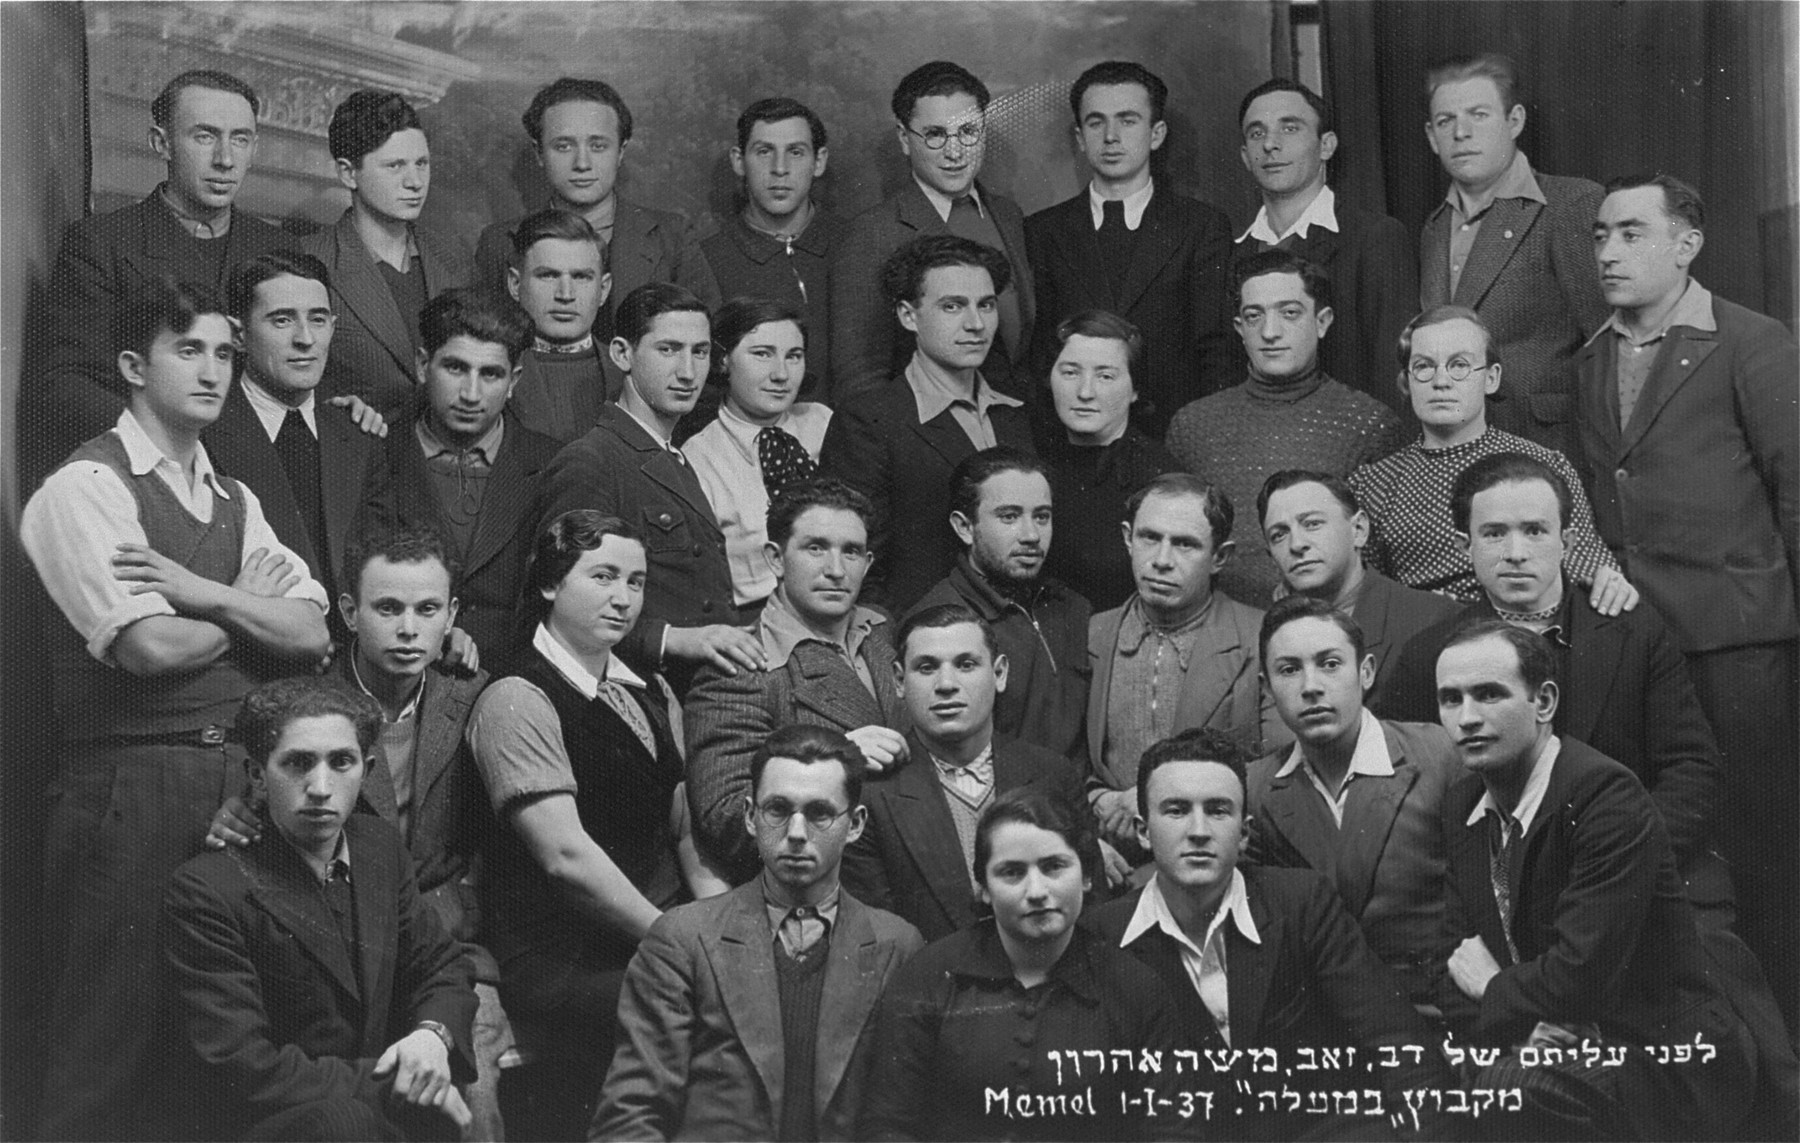 Group portrait of members of the kibbutz hachshara, Bemaaleh, taken on the occasion of the departure of three of its members for Palestine.  Pictured in the third row from the bottom, third from the right is Eliezer Kaplan, the donor's father.